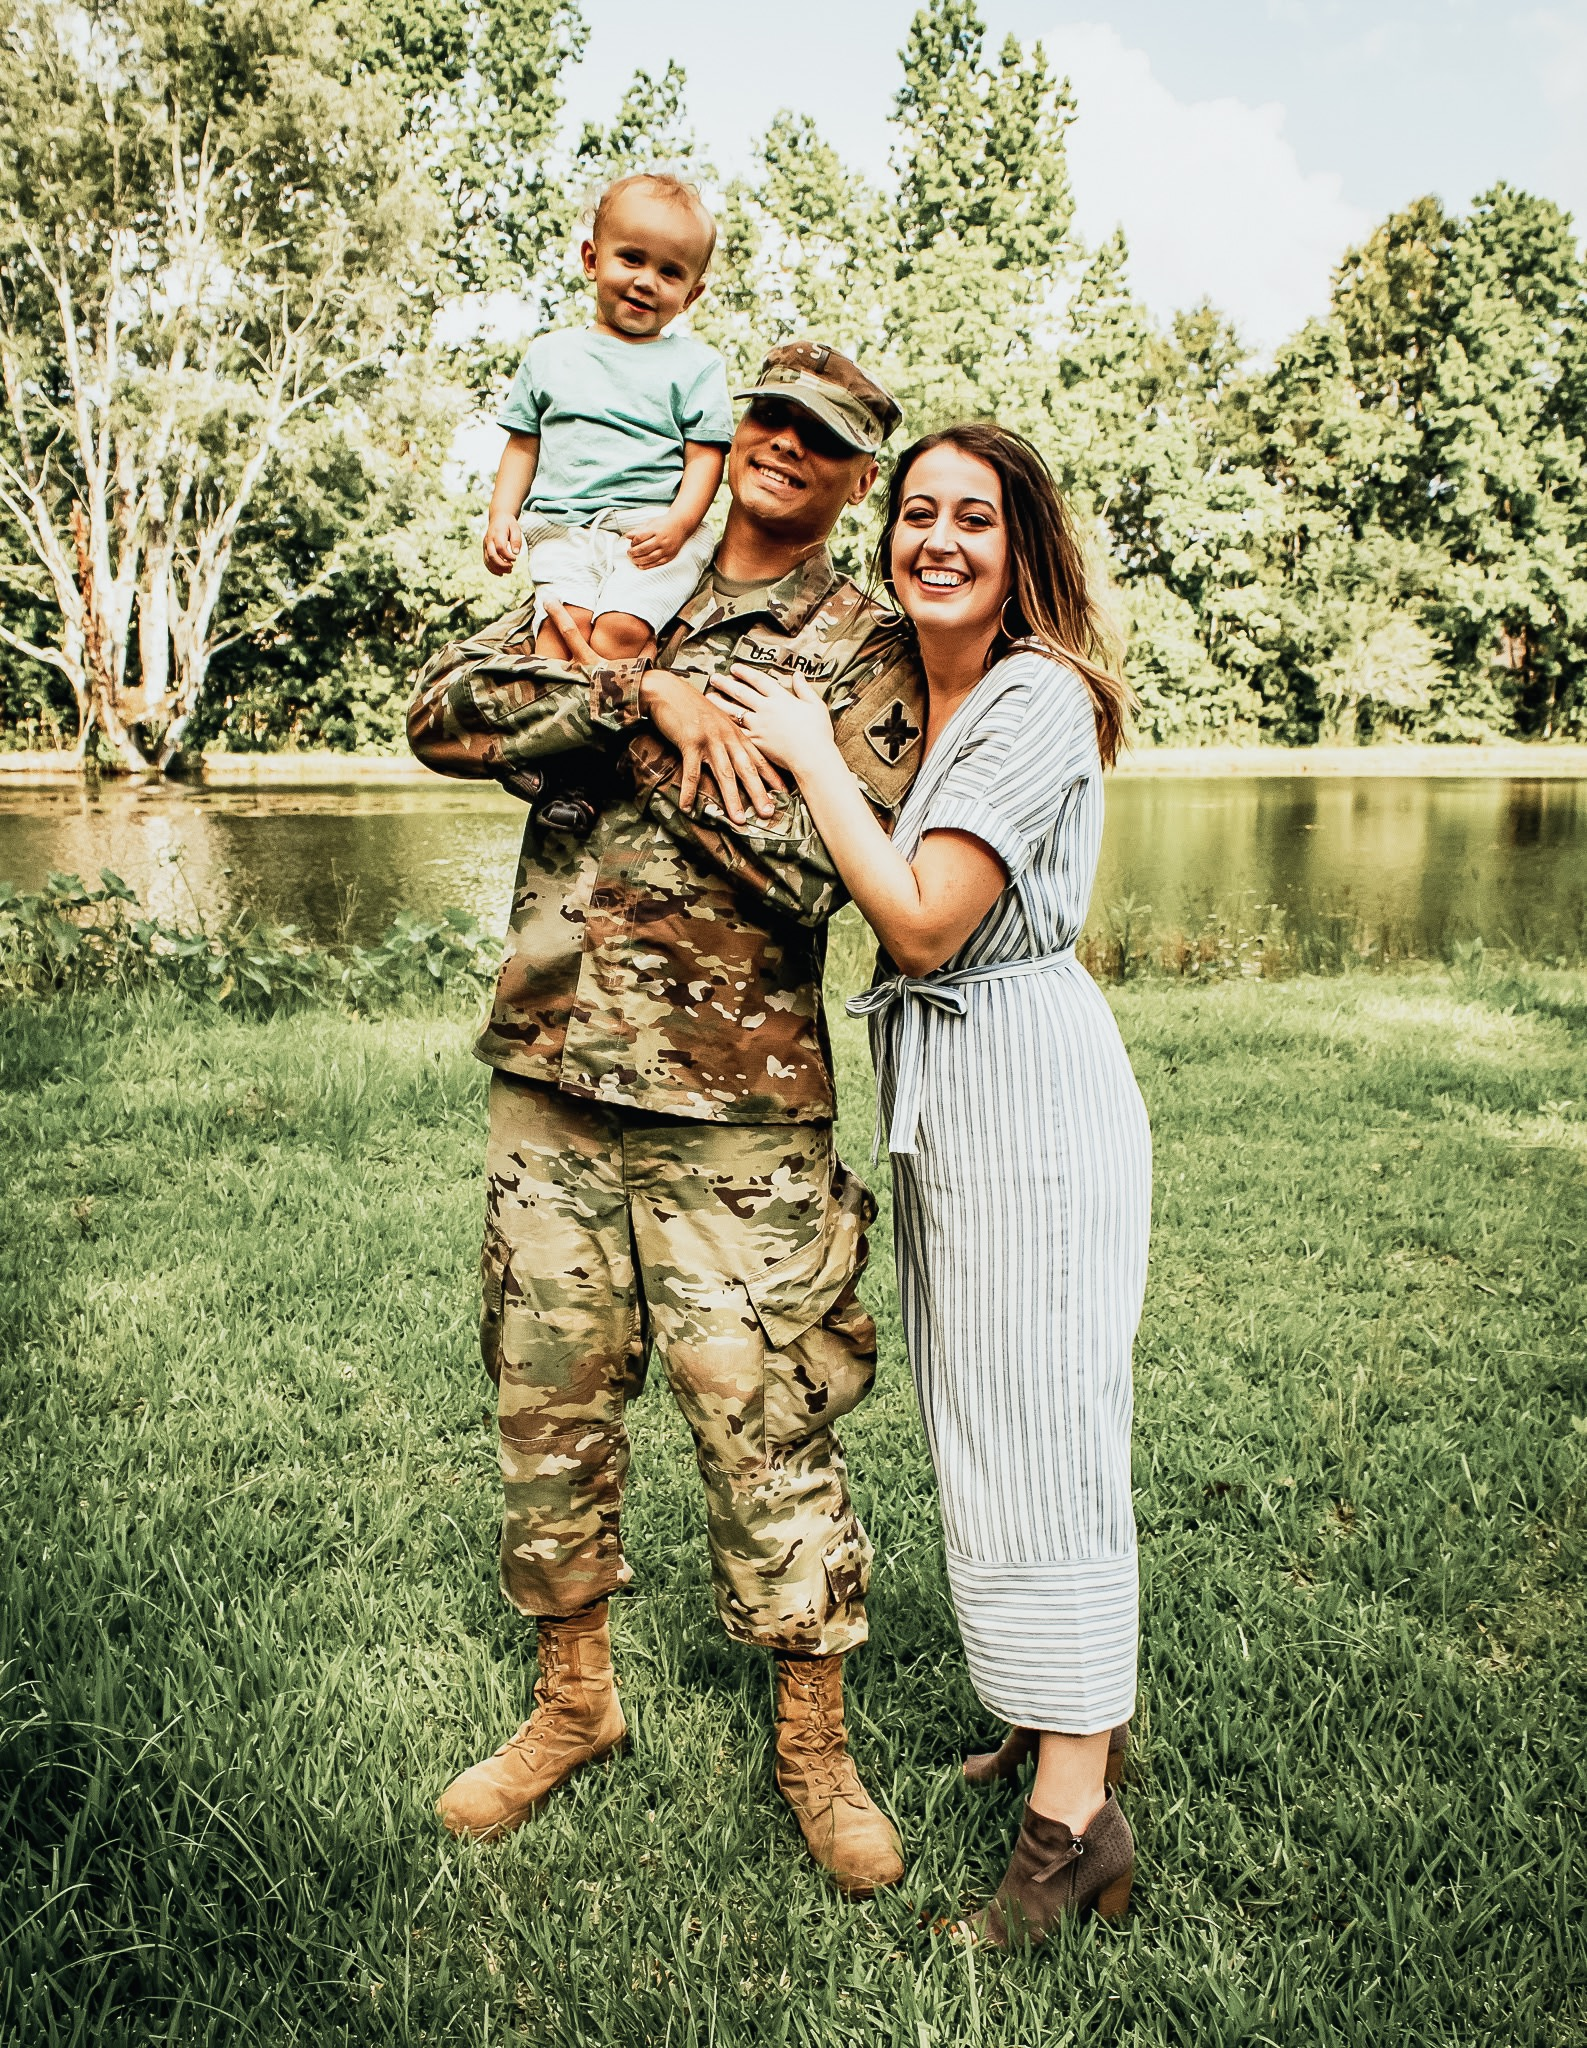 Military Family pictured with Son on Father's Shoulder by Sarah Mozingo